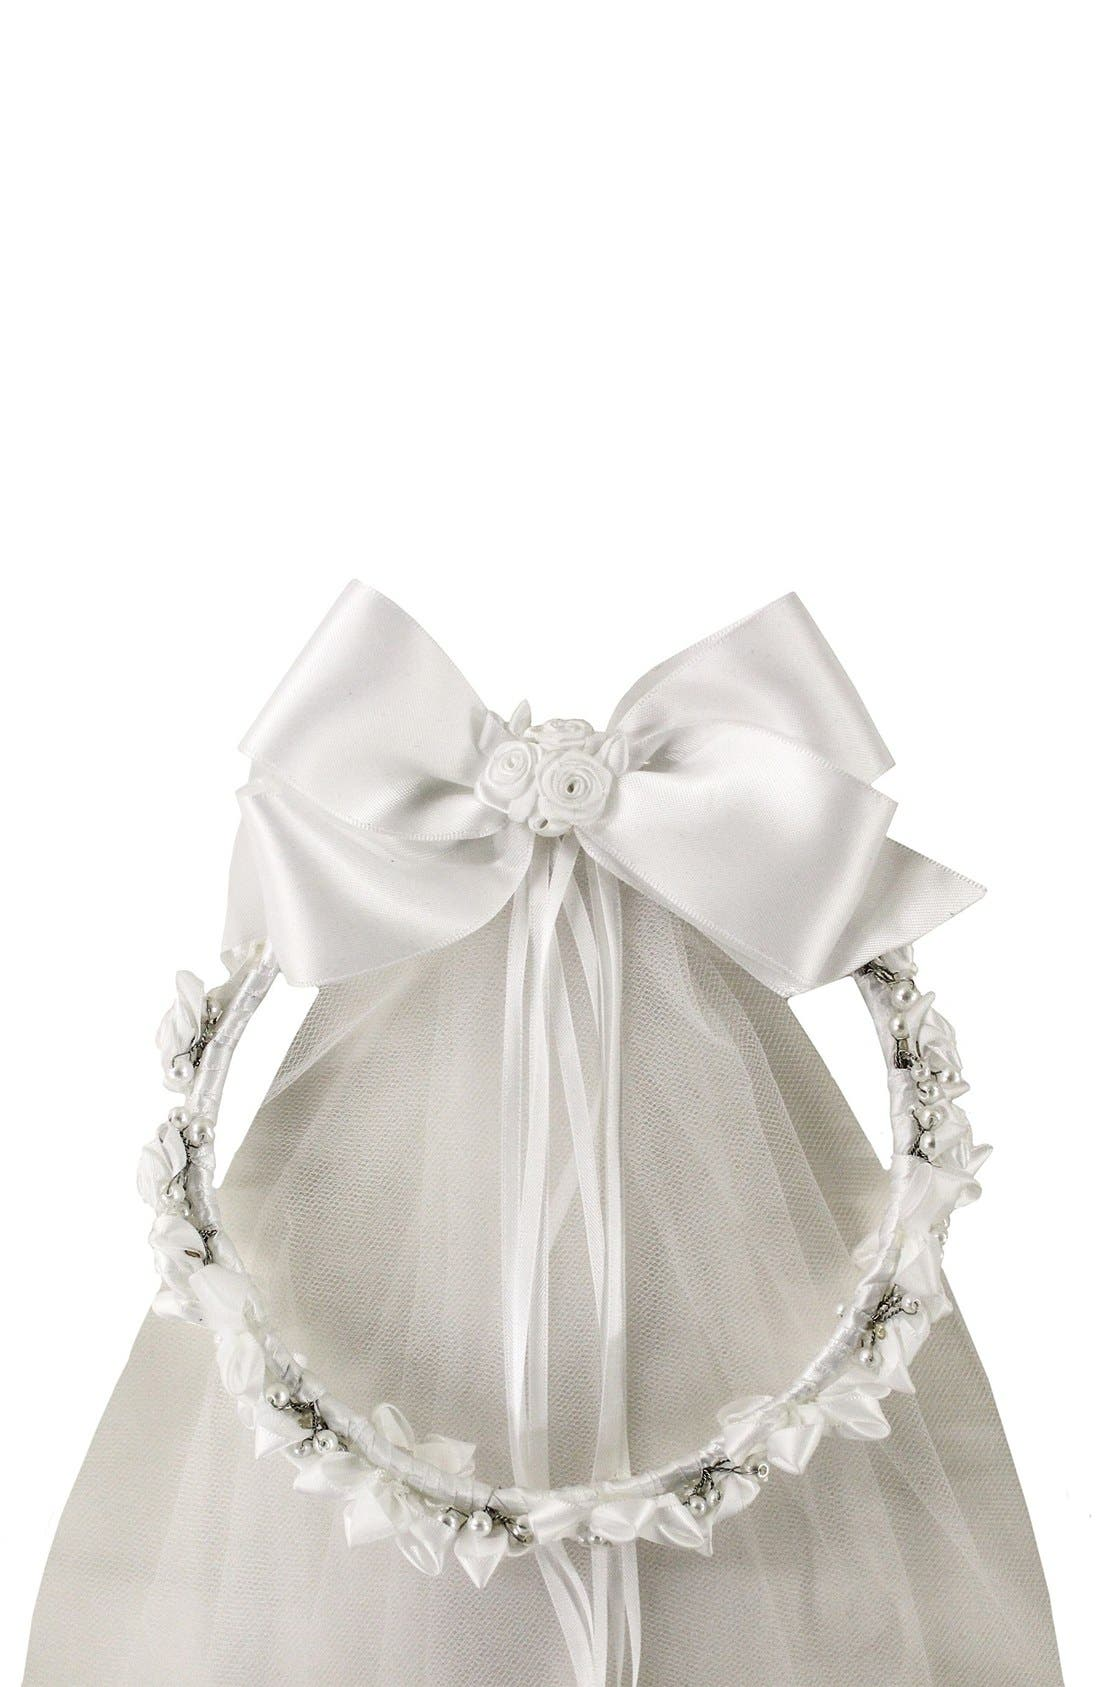 Sorbet Communion Wreath with Removable Veil (Girls)